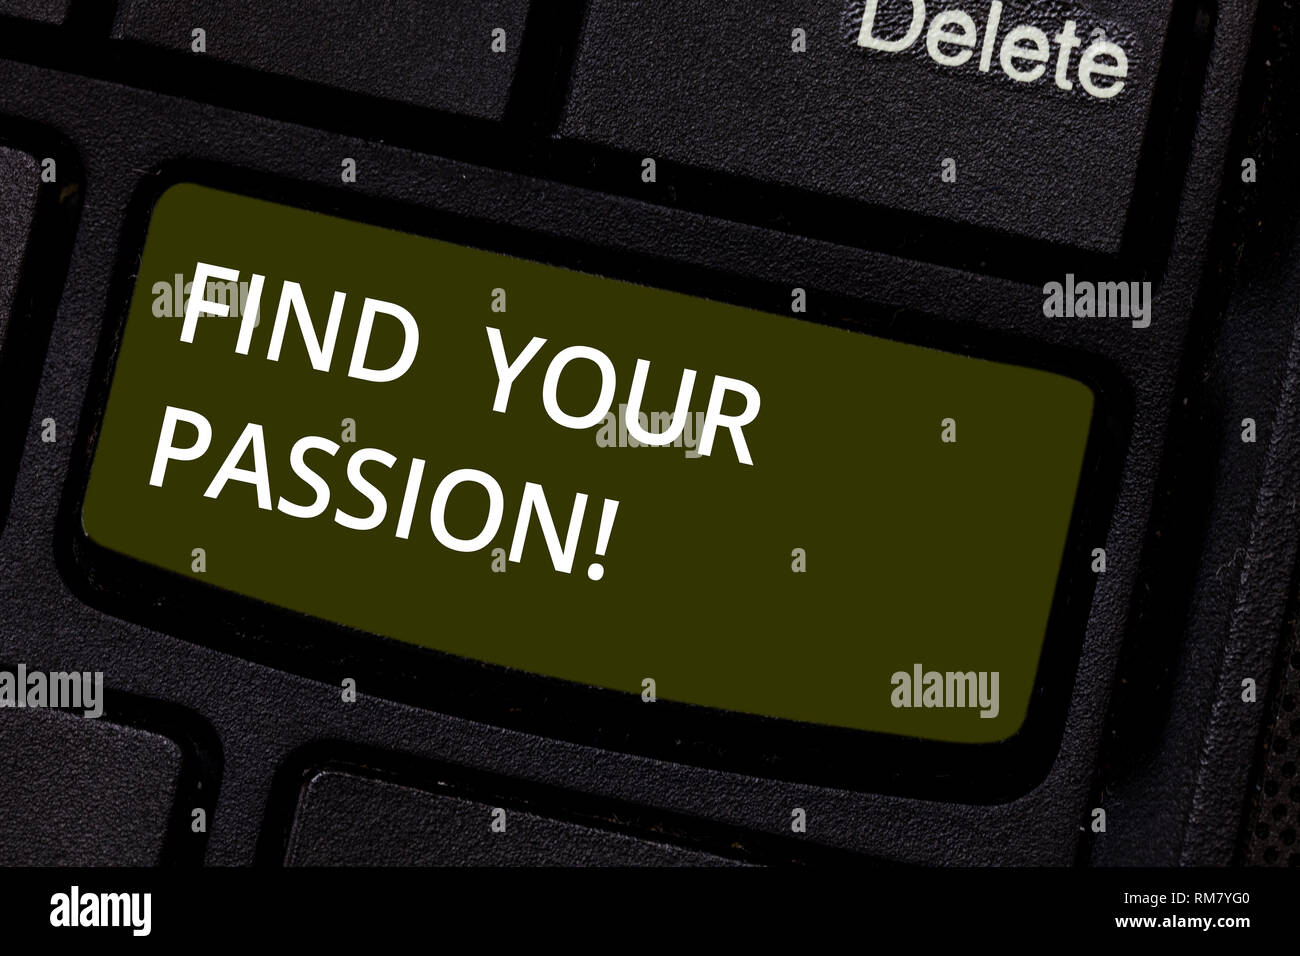 Passion search delete account